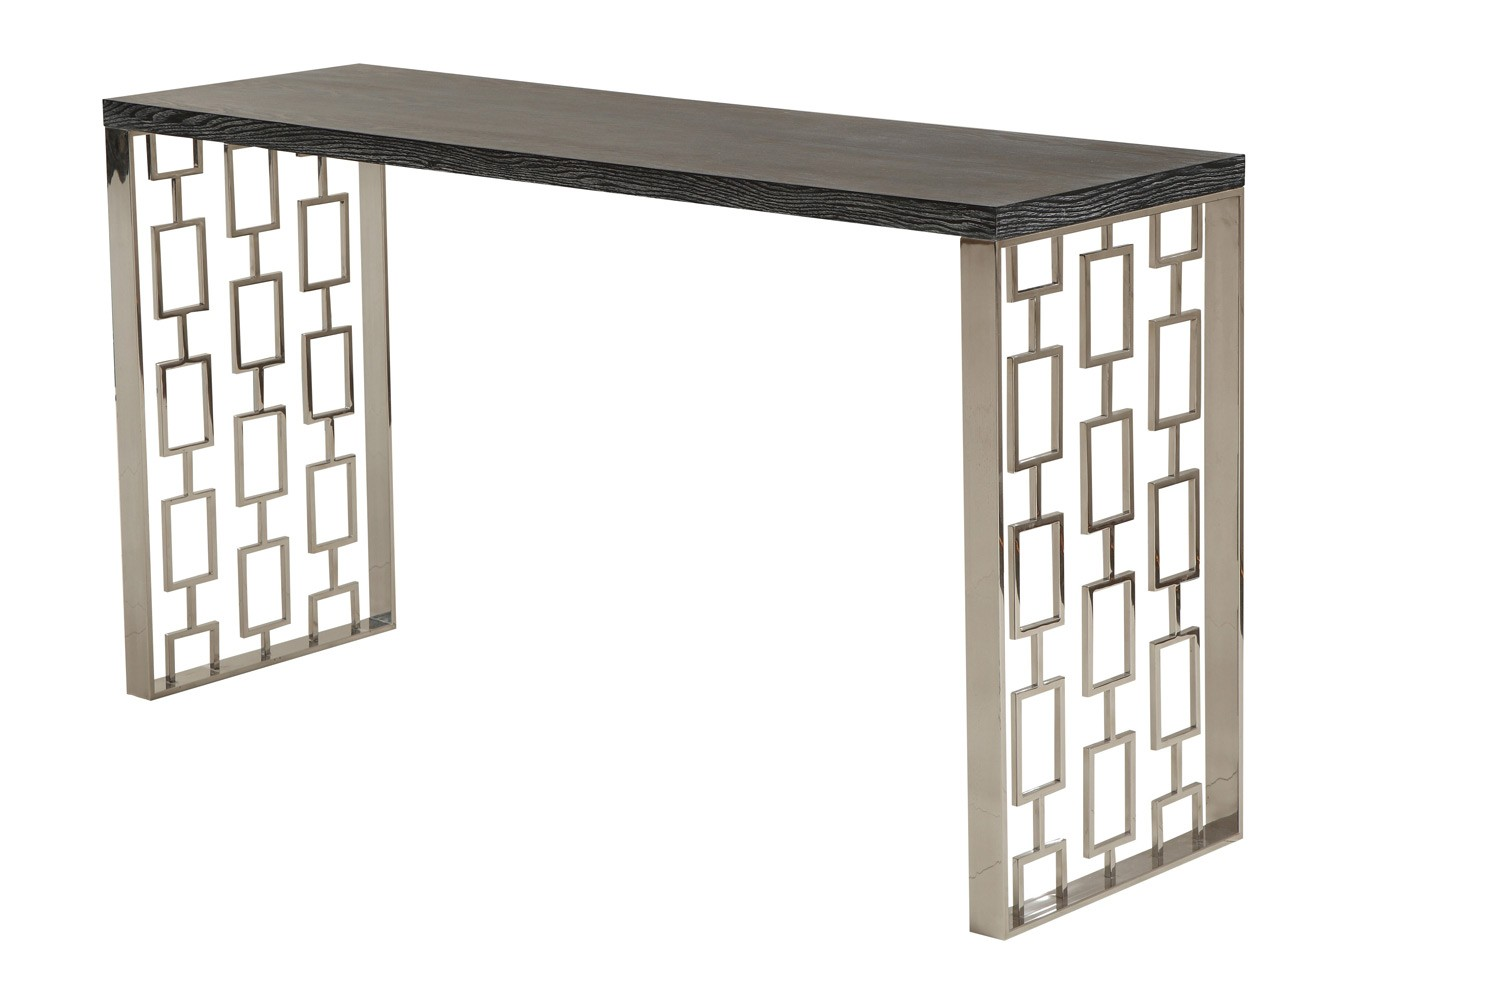 Armen Living Skyline Console Table - Charcoal